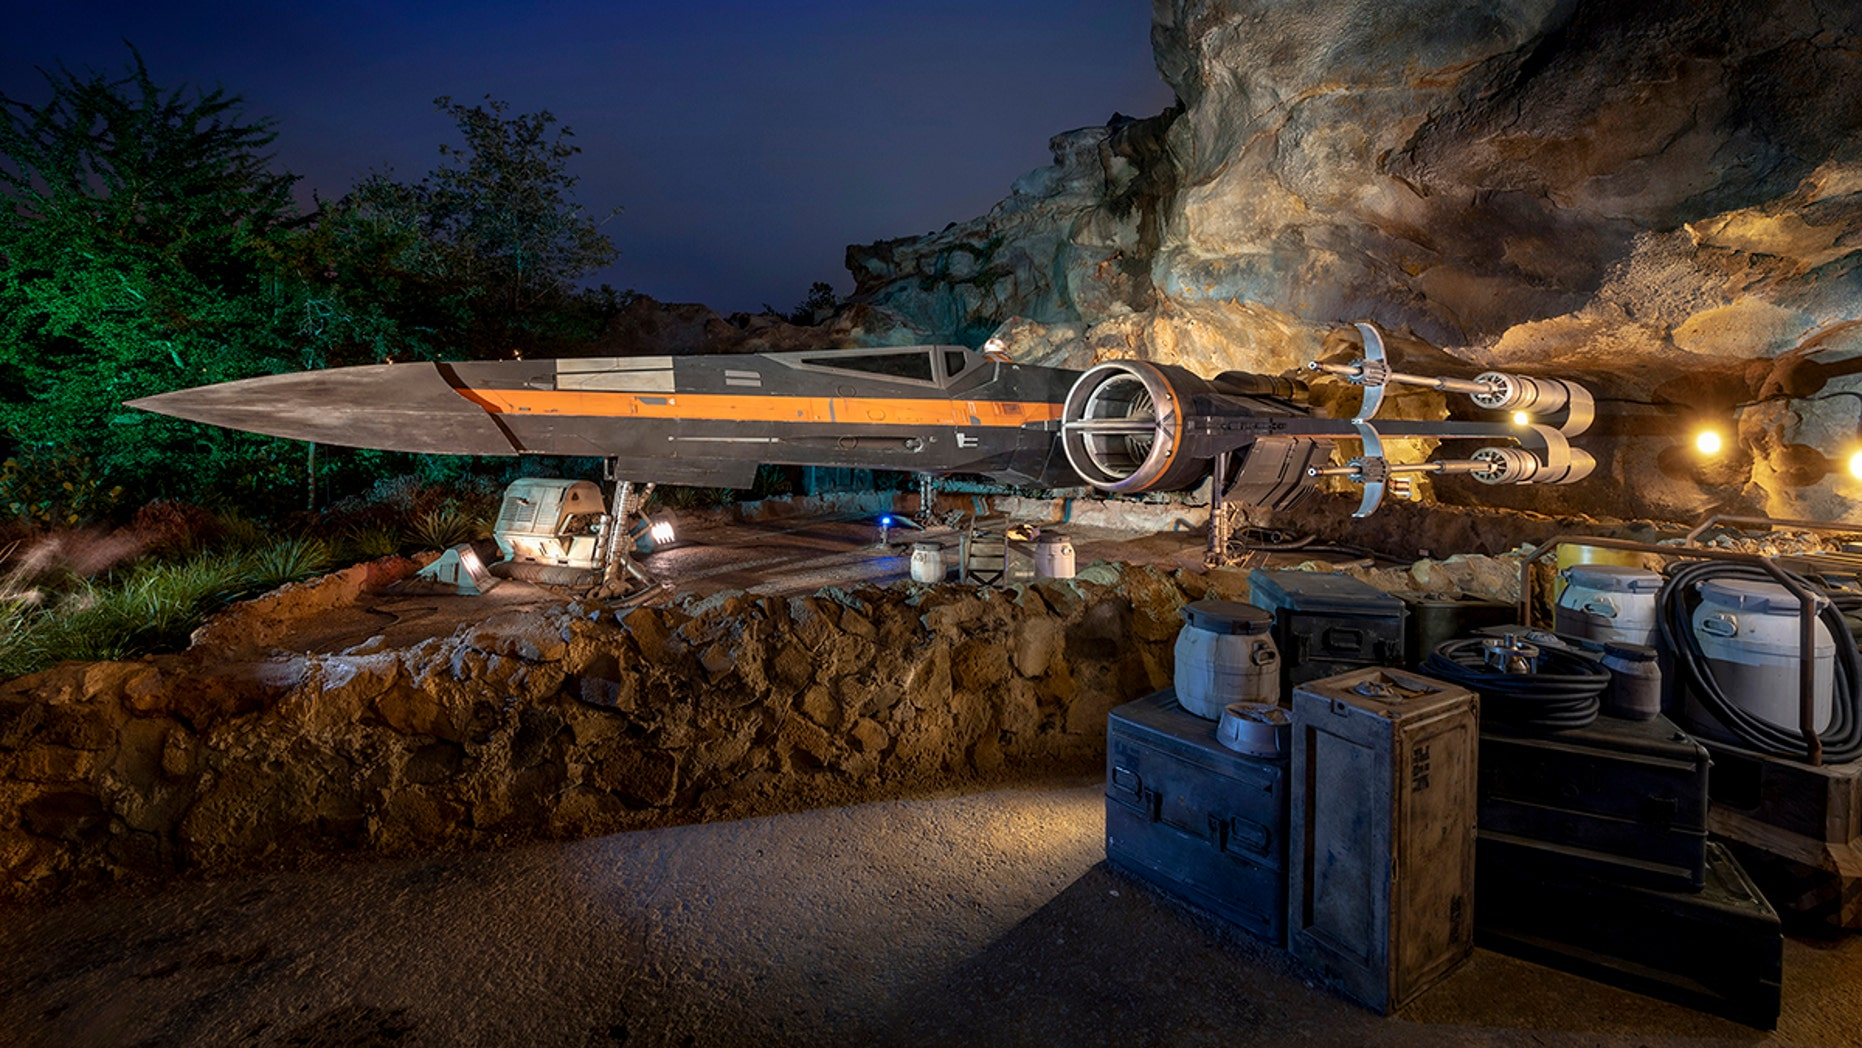 Poe Dameron's X-wing starfighter, Black One, appears in Star Wars: Rise of the Resistance, opening Dec. 5, 2019, at Disney's Hollywood Studios in Florida and Jan. 17, 2020, at Disneyland Park in California.